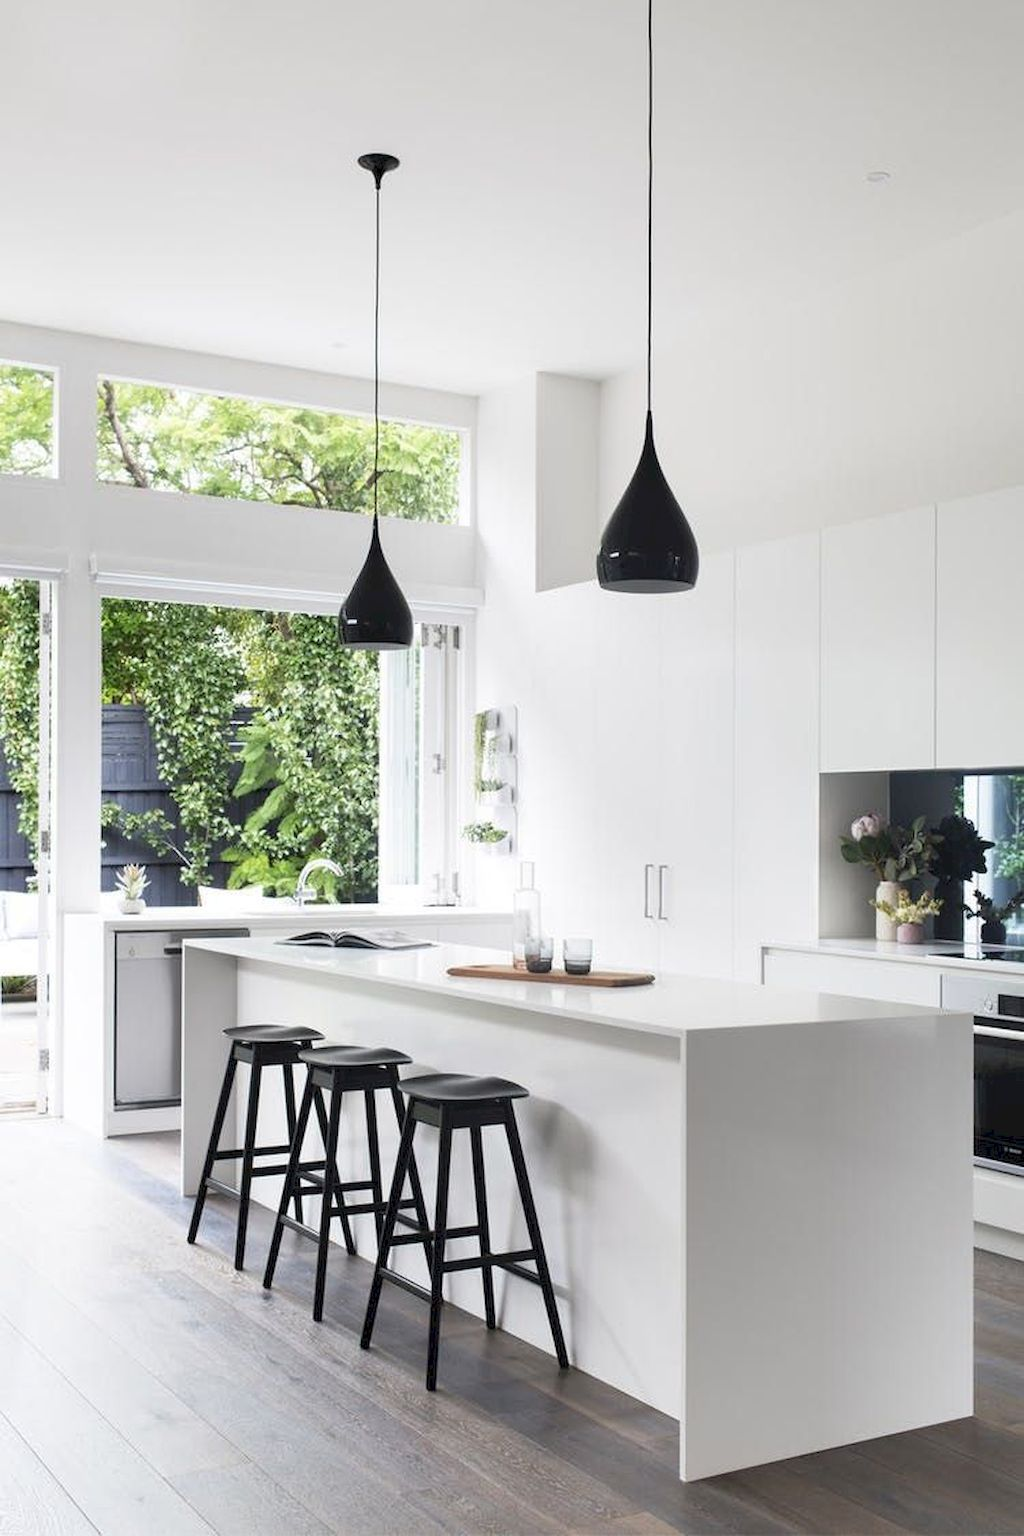 Decorative Kitchen Pendant Design with Modern and Classic Concept Part 5